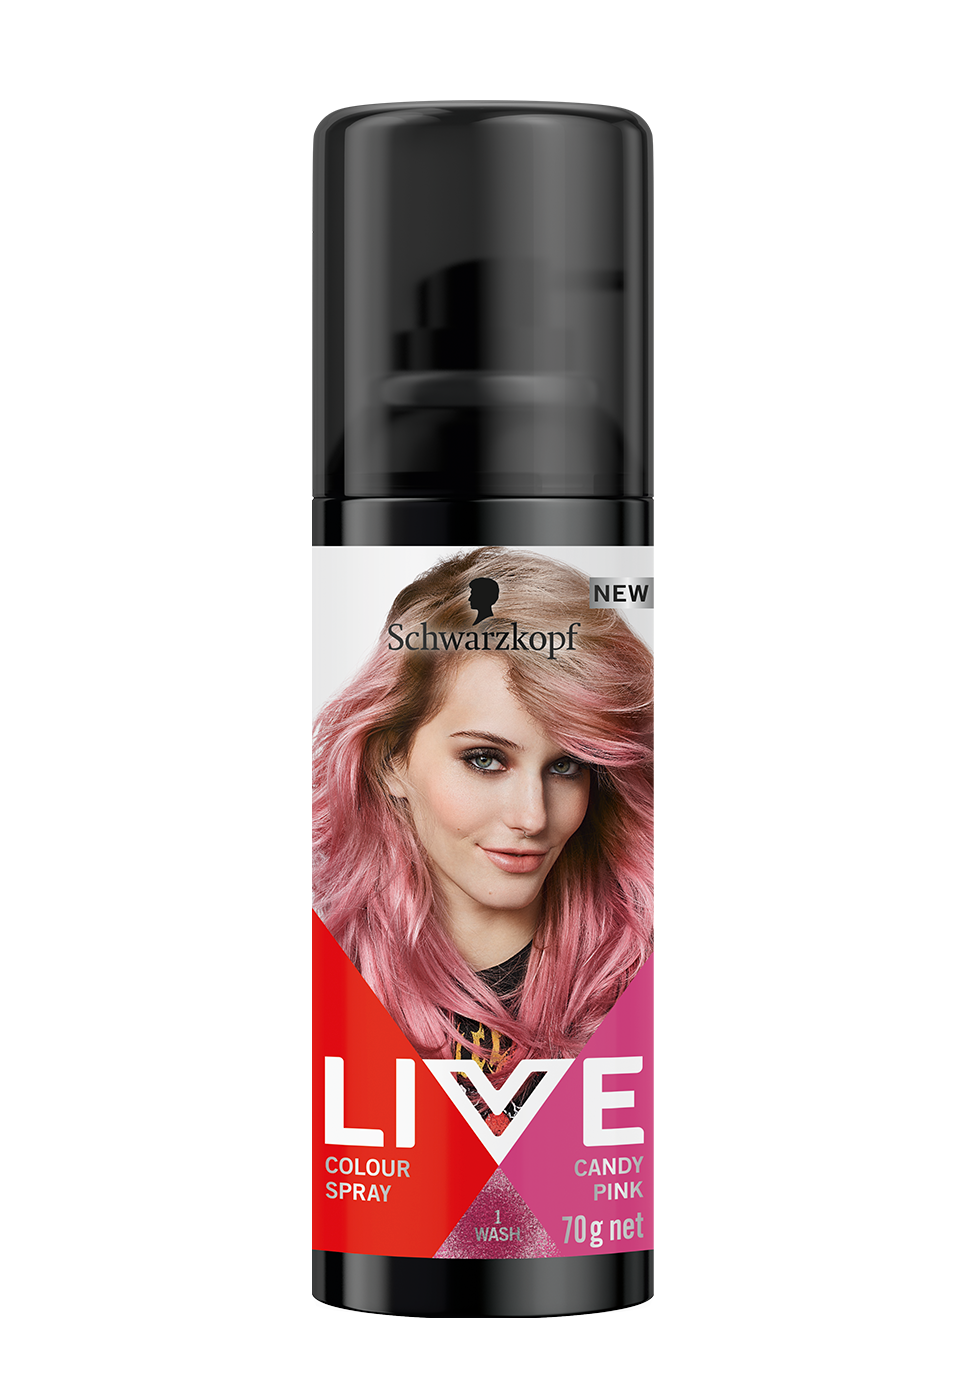 CareLiveColourSprayCandyPink